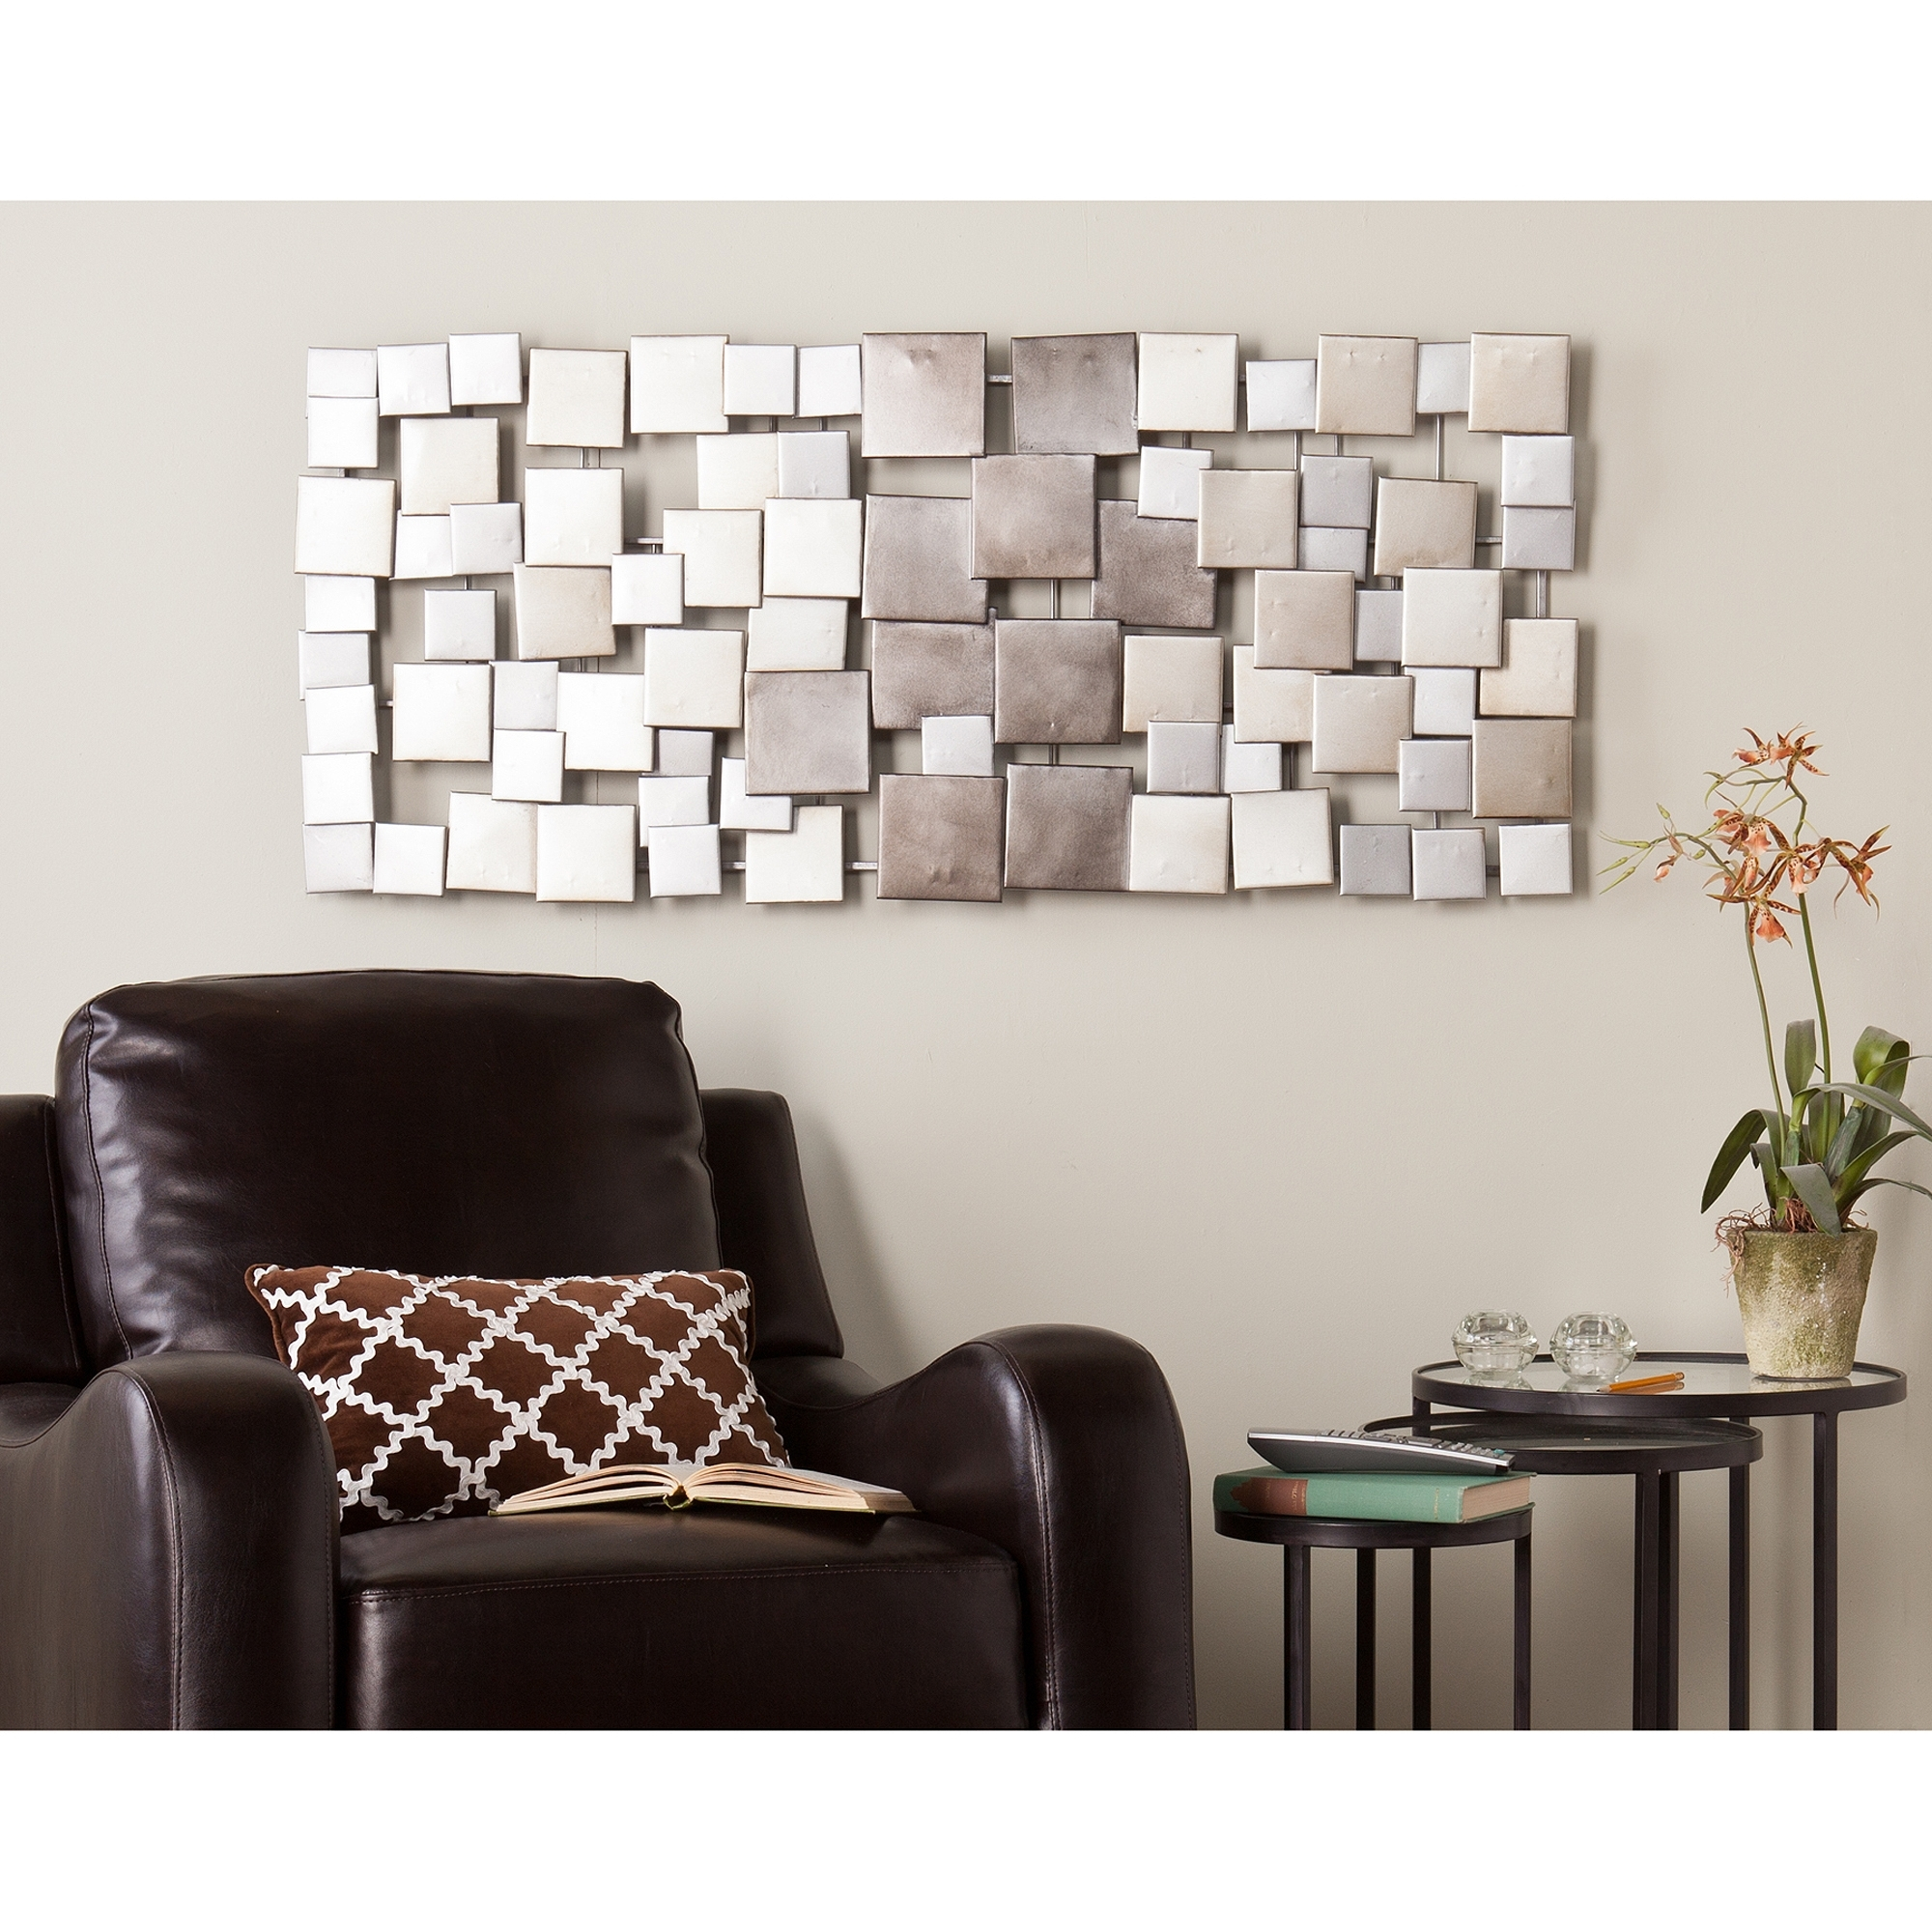 Metal Wall Art – Walmart Pertaining To Most Recently Released Kingdom Abstract Metal Wall Art (View 7 of 20)